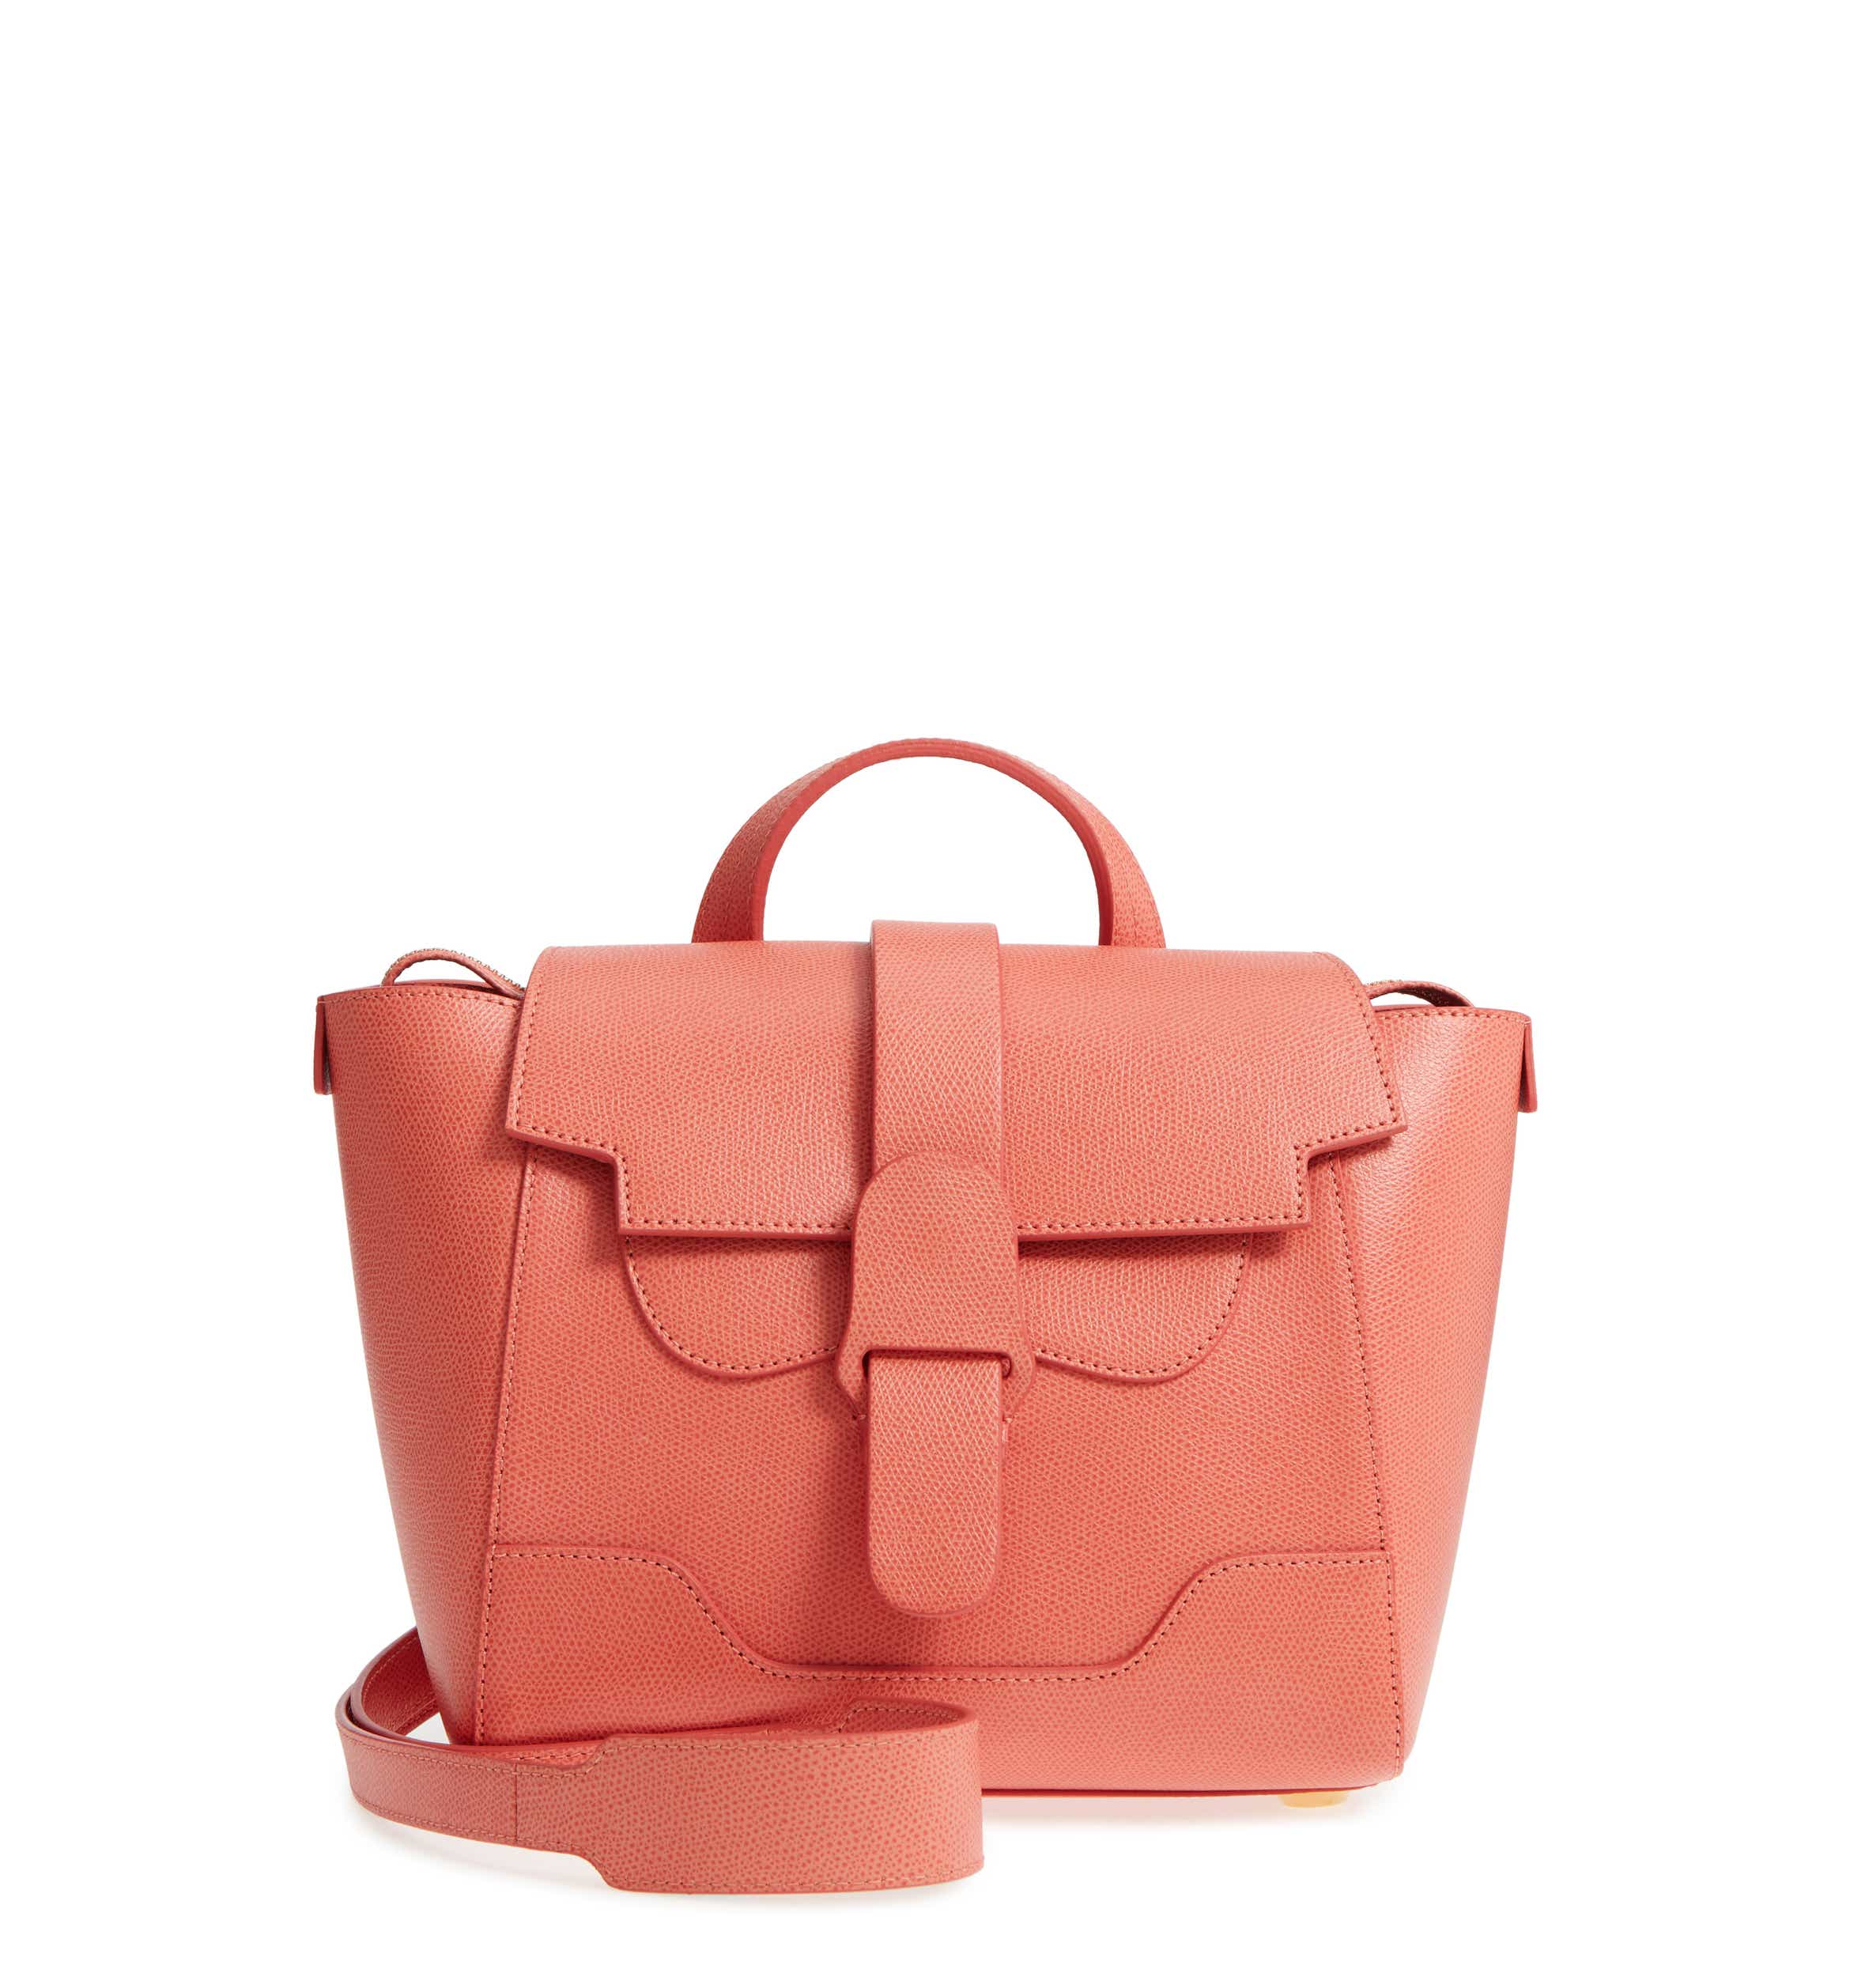 Mini Maestra Leather Satchel SENREVE $695 (Nordstrom)